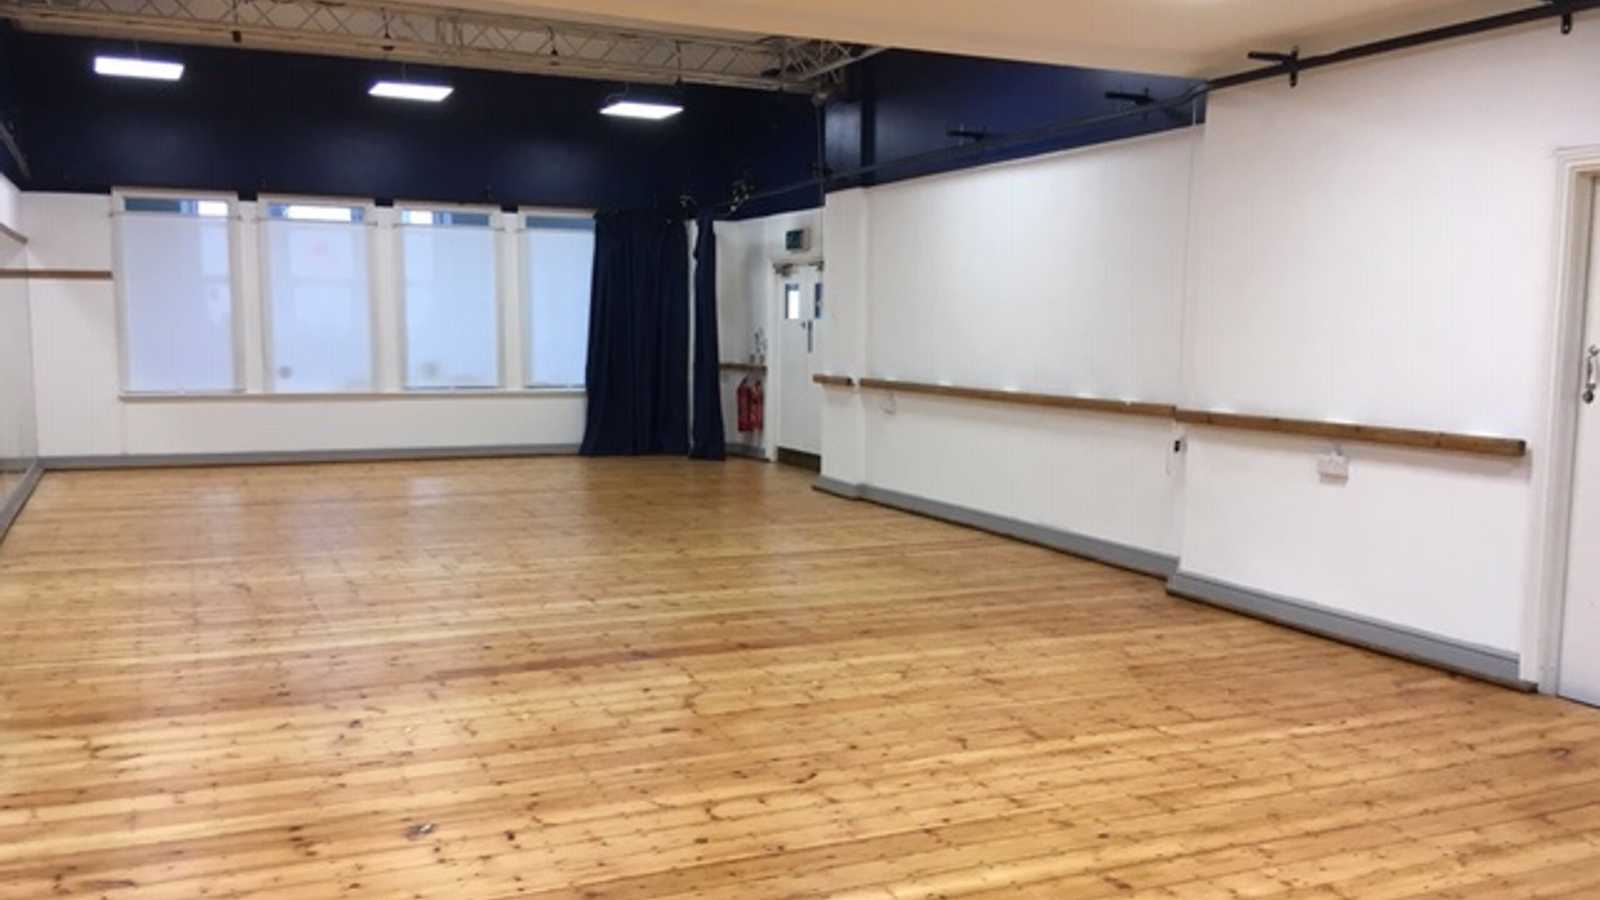 Studio with mirrored walls, blackout curtain, lighting truss and sound equipment